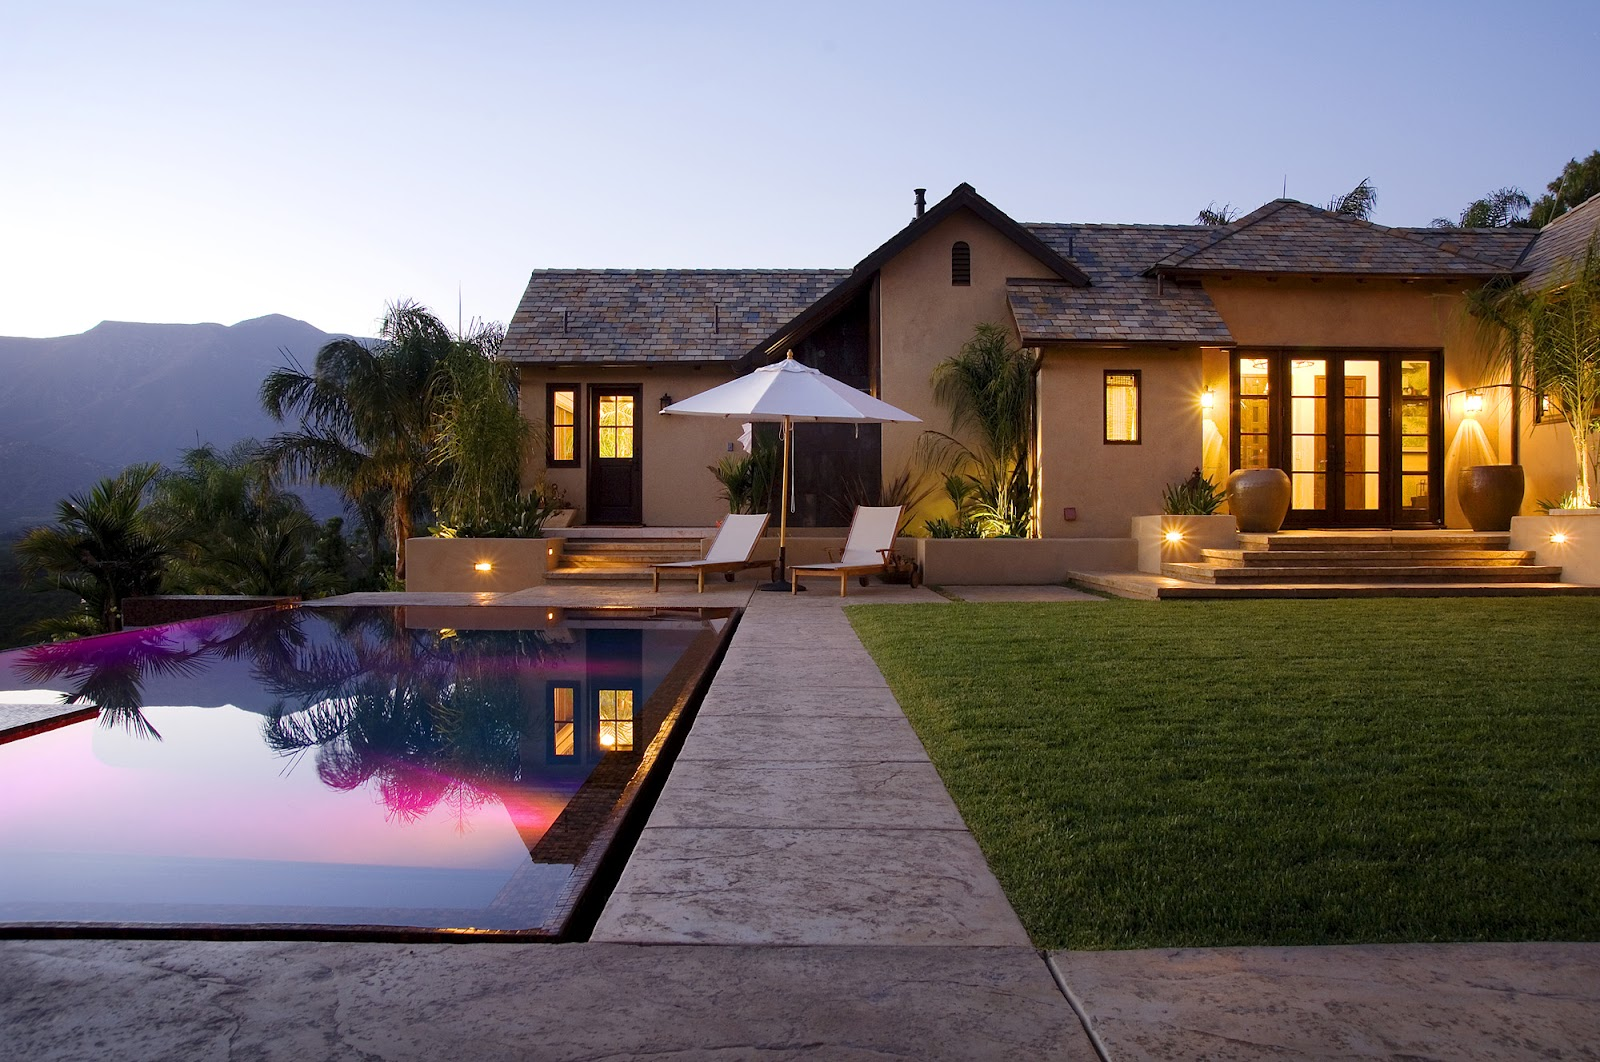 Amazing_Home_Ojai_Valley_Hilltop_Compound_by_Braden_Sterling_of_Sterling-Huddleson_Architecture_Ojai_California_world_of_architecture_worldofarchi_04.jpg